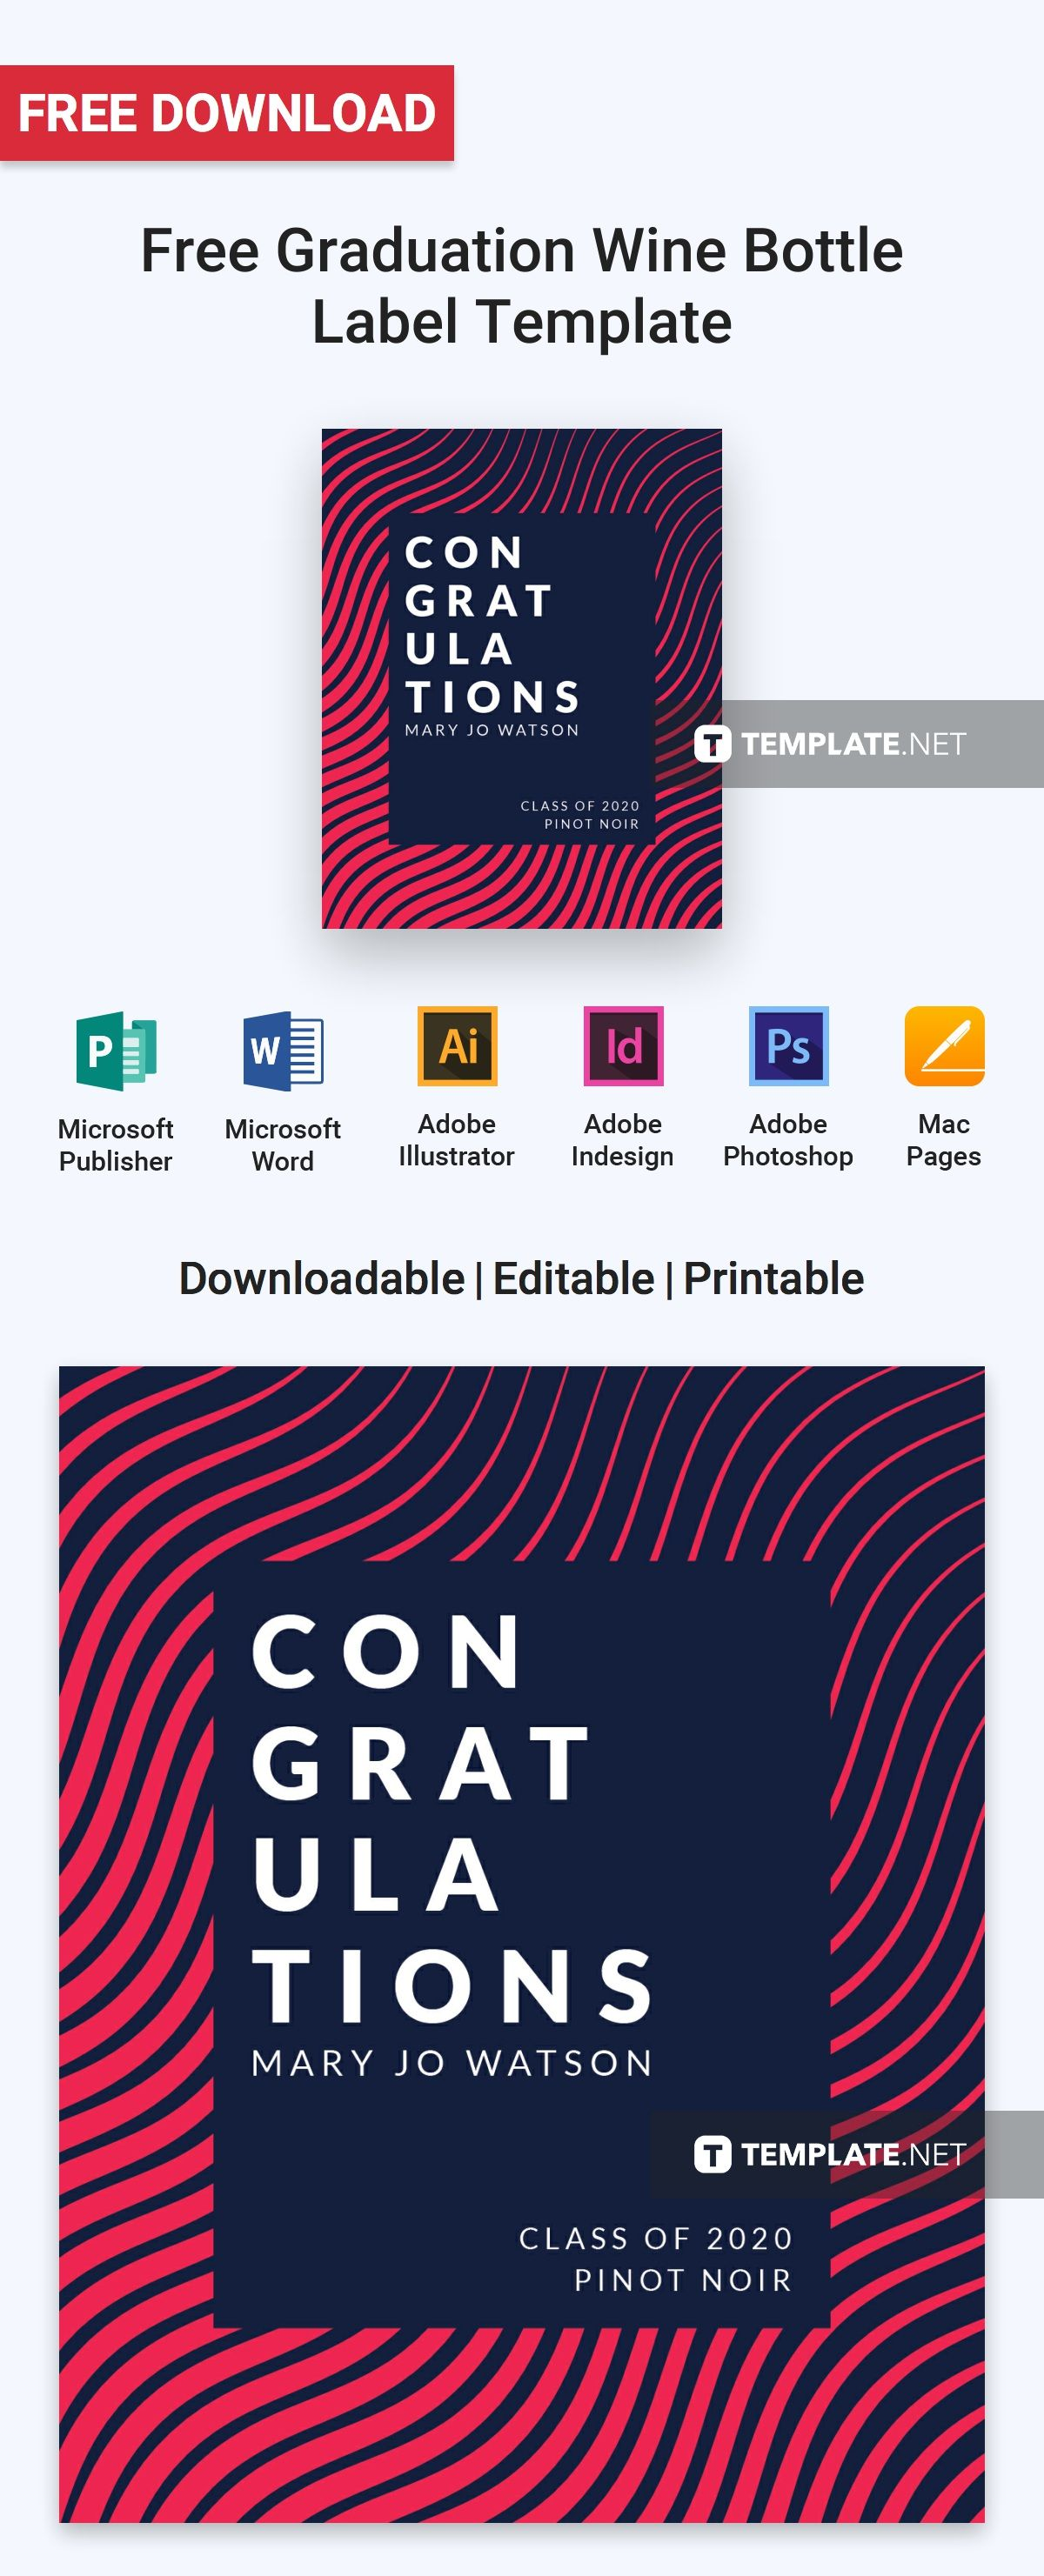 Free Graduation Wine Bottle Label Template Word Doc Psd Indesign Apple Mac Pages Publisher Illustrator Bottle Label Template Label Templates Wine Bottle Labels Graduation address labels template free